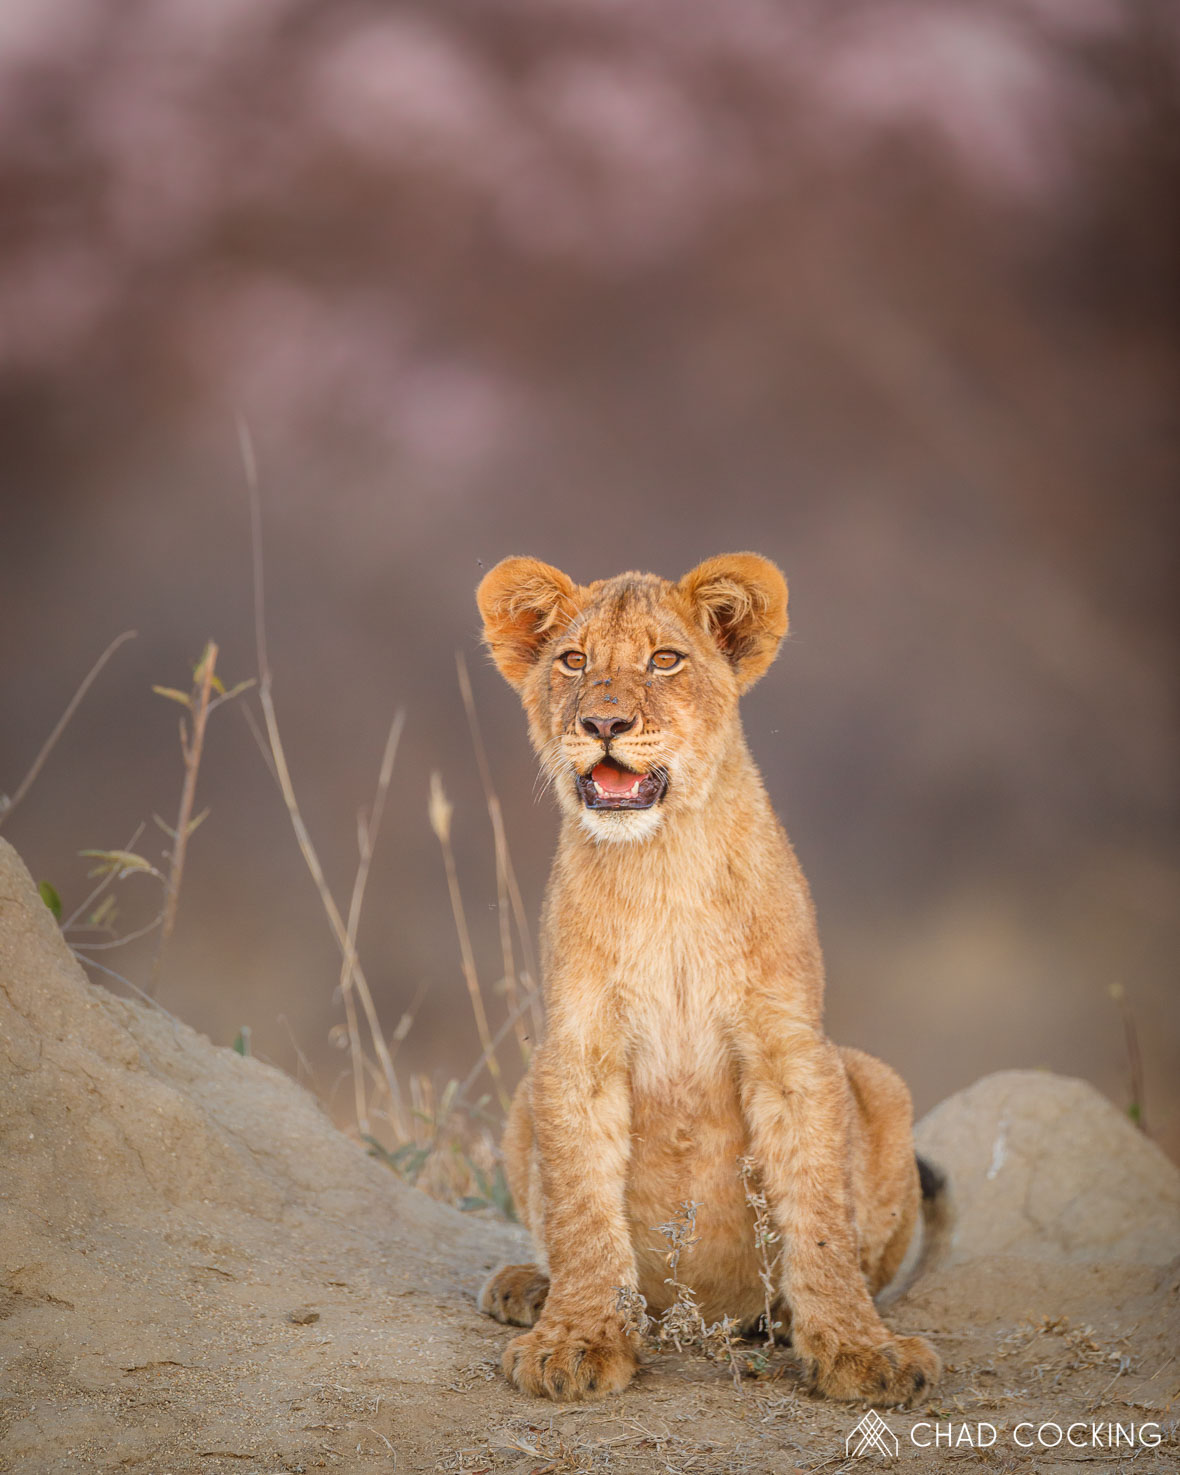 Young lion cub at Tanda Tula in the Timbavati Game Reserve, part of the Greater Kruger National Park, South Africa - Photo credit: Chad Cocking